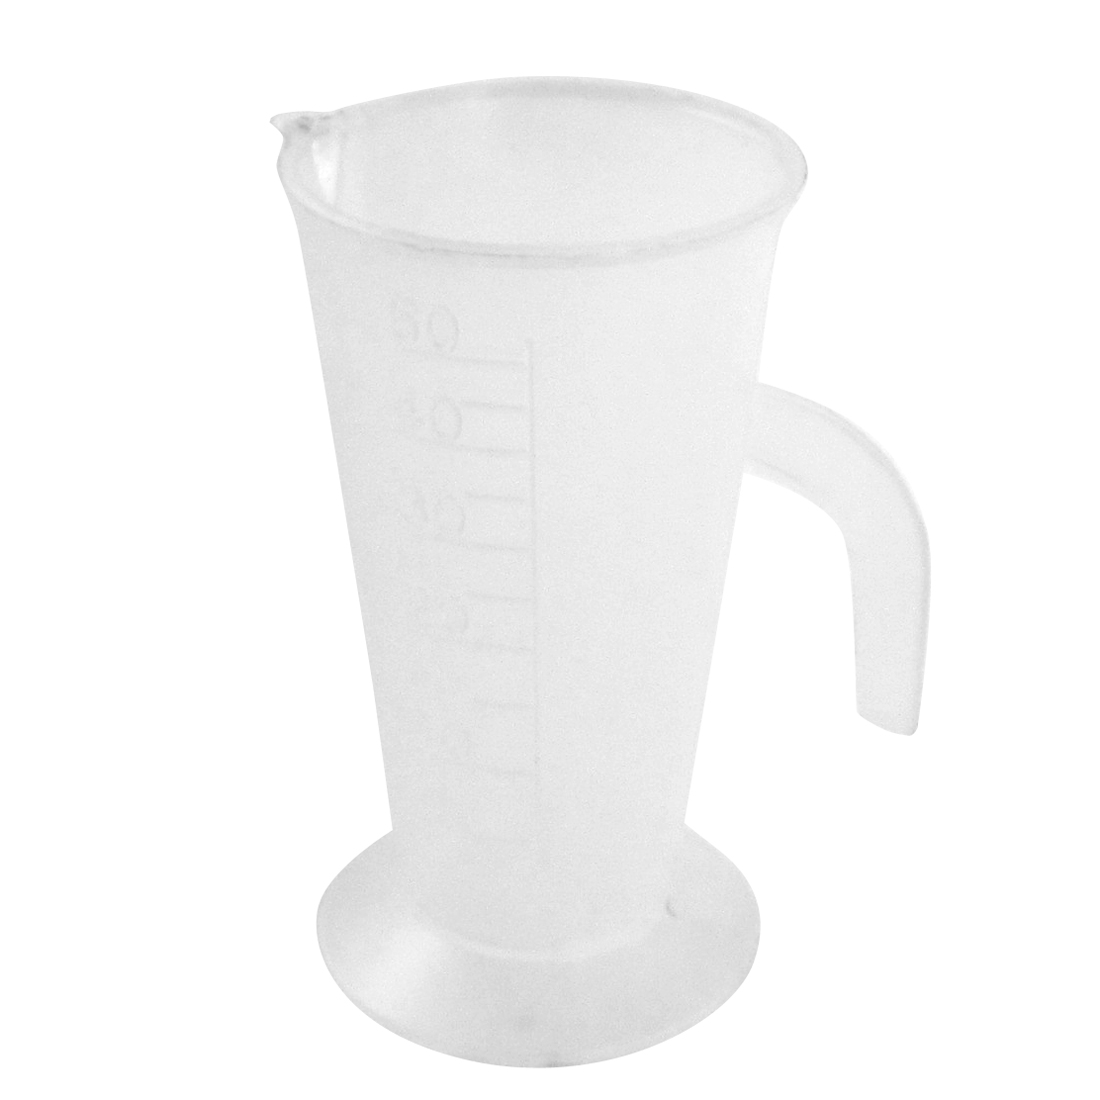 Kitchen Laboratory Plastic Measuring Cup Mug Measurement Beaker 50mL